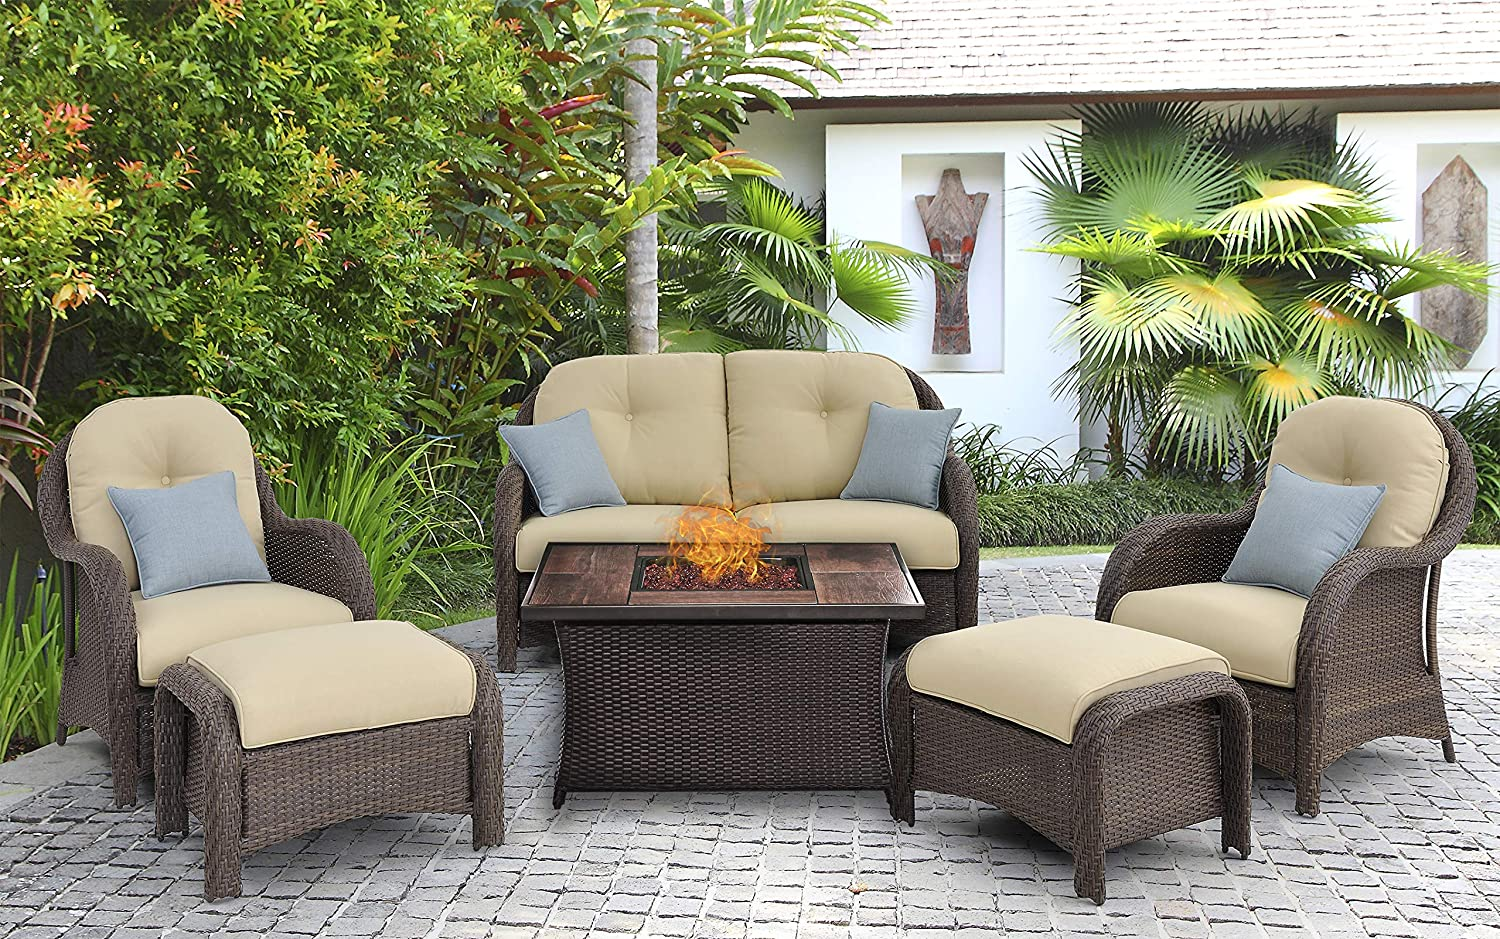 Amazing Hanover Newpt6Pcfp Crm Wg 6 Piece Newport Woven Seating Set In Cream With Fire Pit Table Gmtry Best Dining Table And Chair Ideas Images Gmtryco